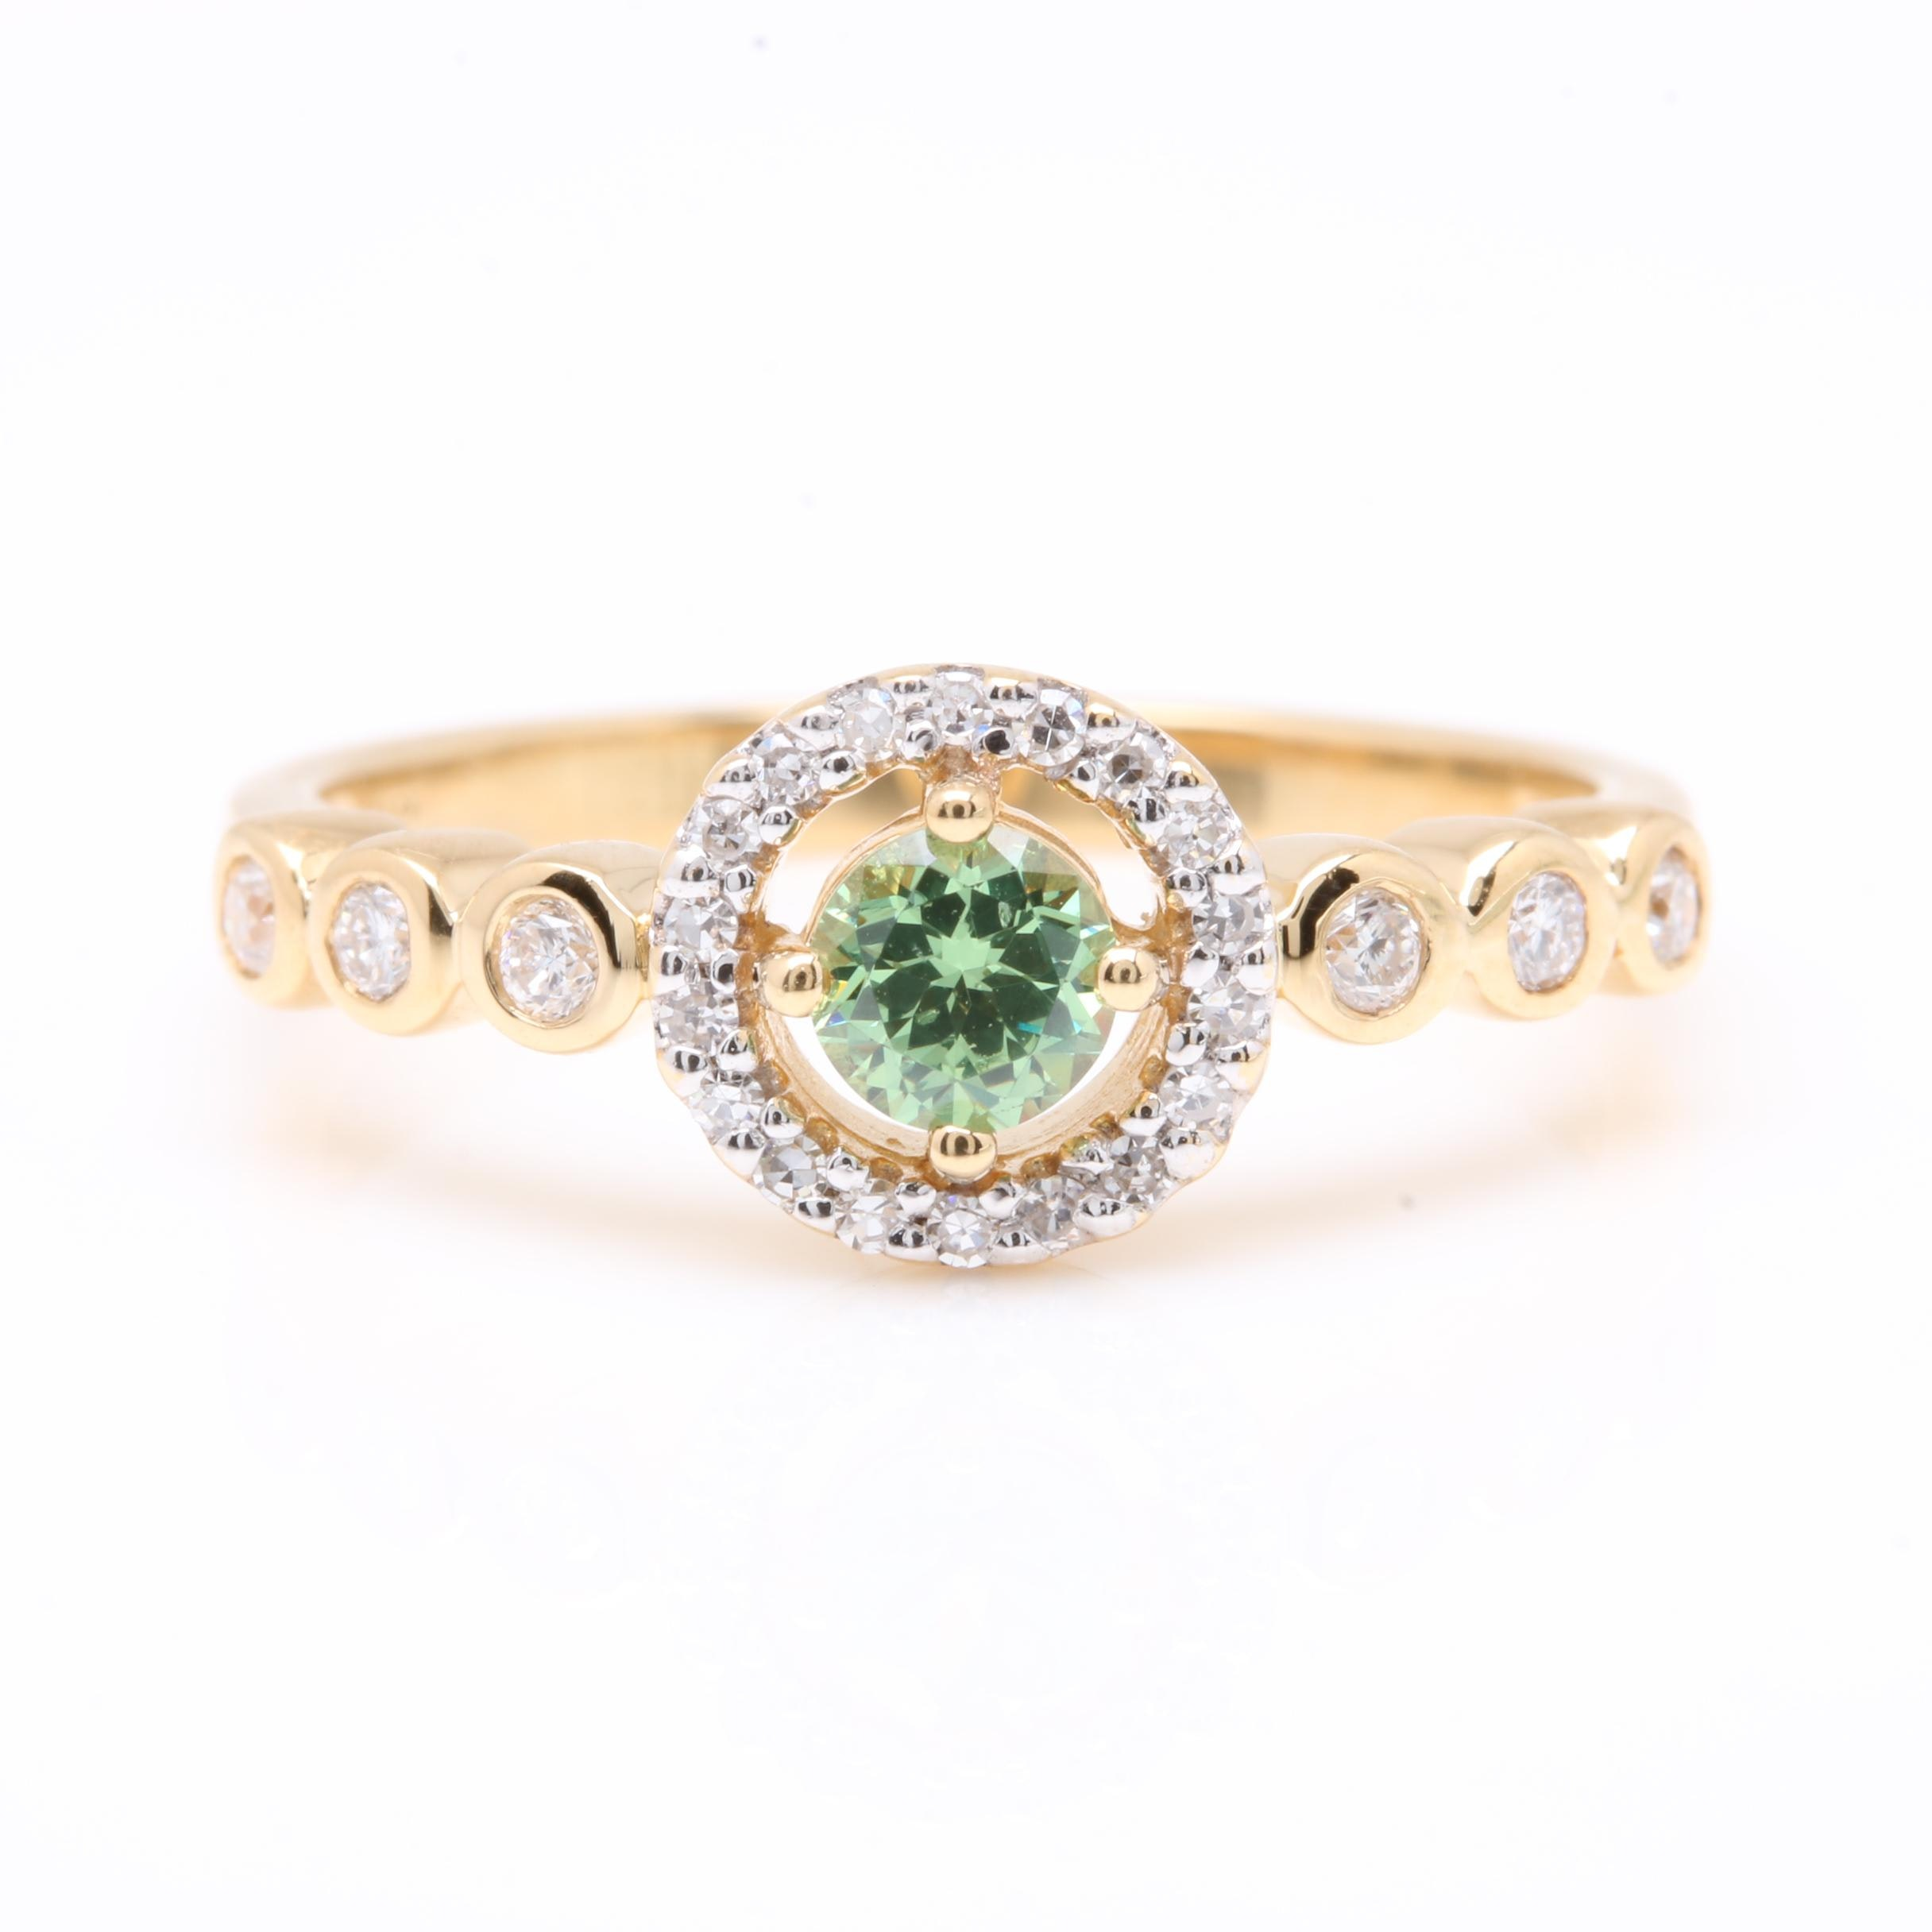 18K Yellow Gold Demantoid Garnet and Diamond Ring